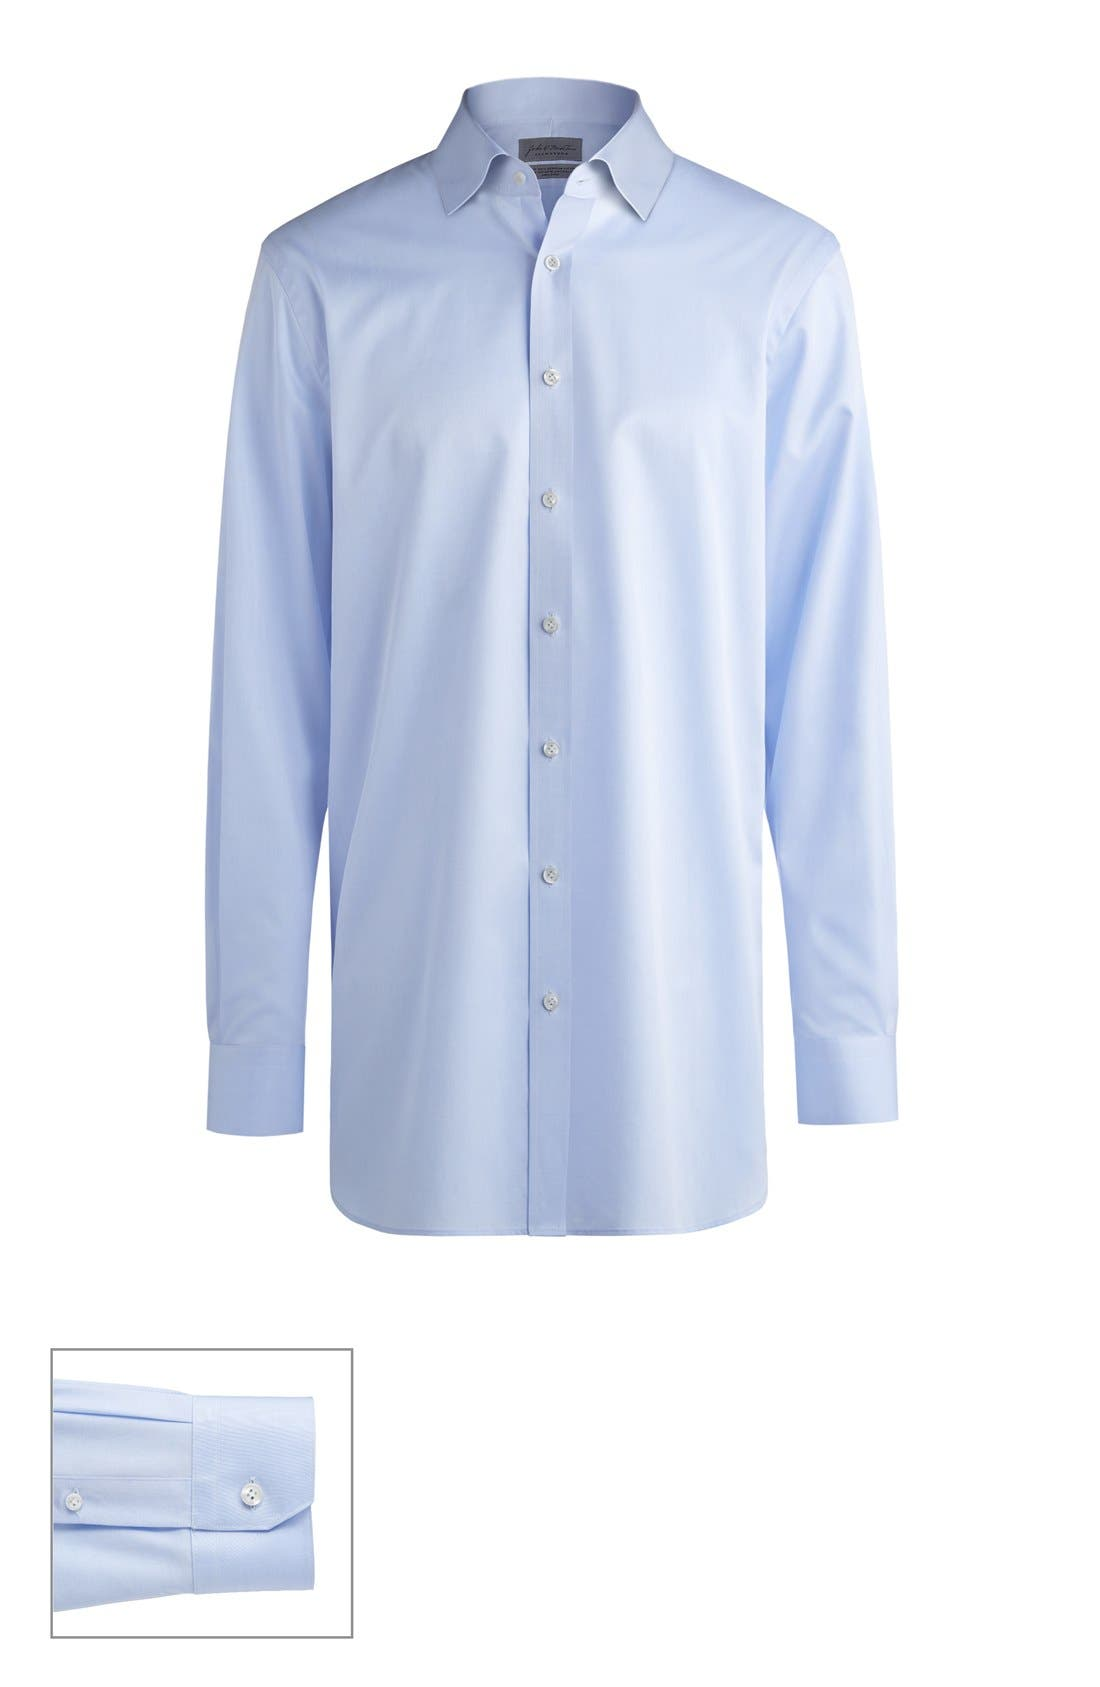 Made to Measure Extra Trim Fit Spread Collar Solid Dress Shirt,                             Main thumbnail 1, color,                             Blue Fine Twill